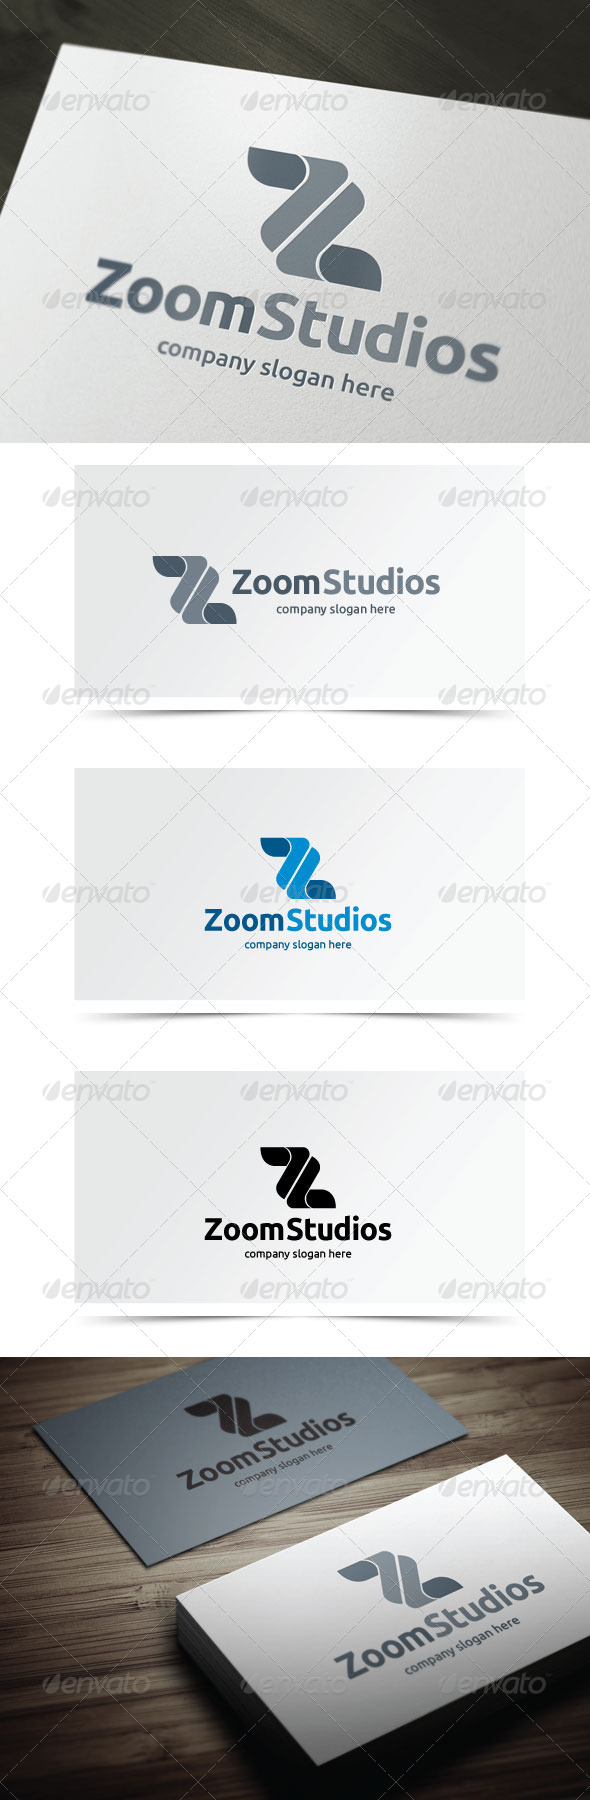 Zoom Studios - Letters Logo Templates